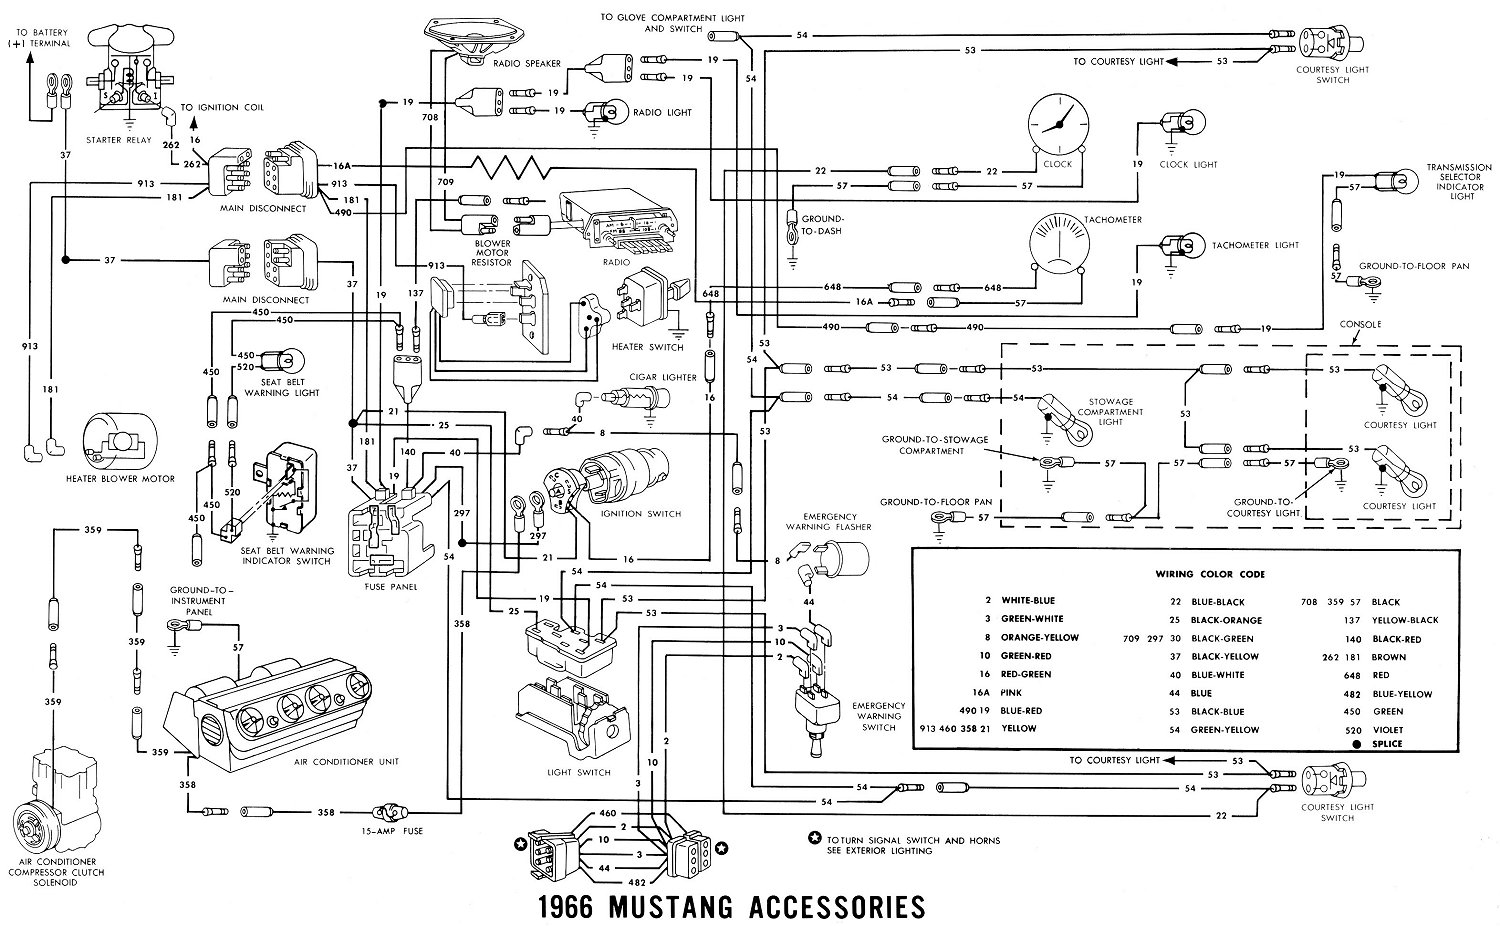 1968 Mustang Coupe Wiring Diagram 2002 Jaguar S Type Fuse Box Diagram Cheerokee Ab16 Jeanjaures37 Fr